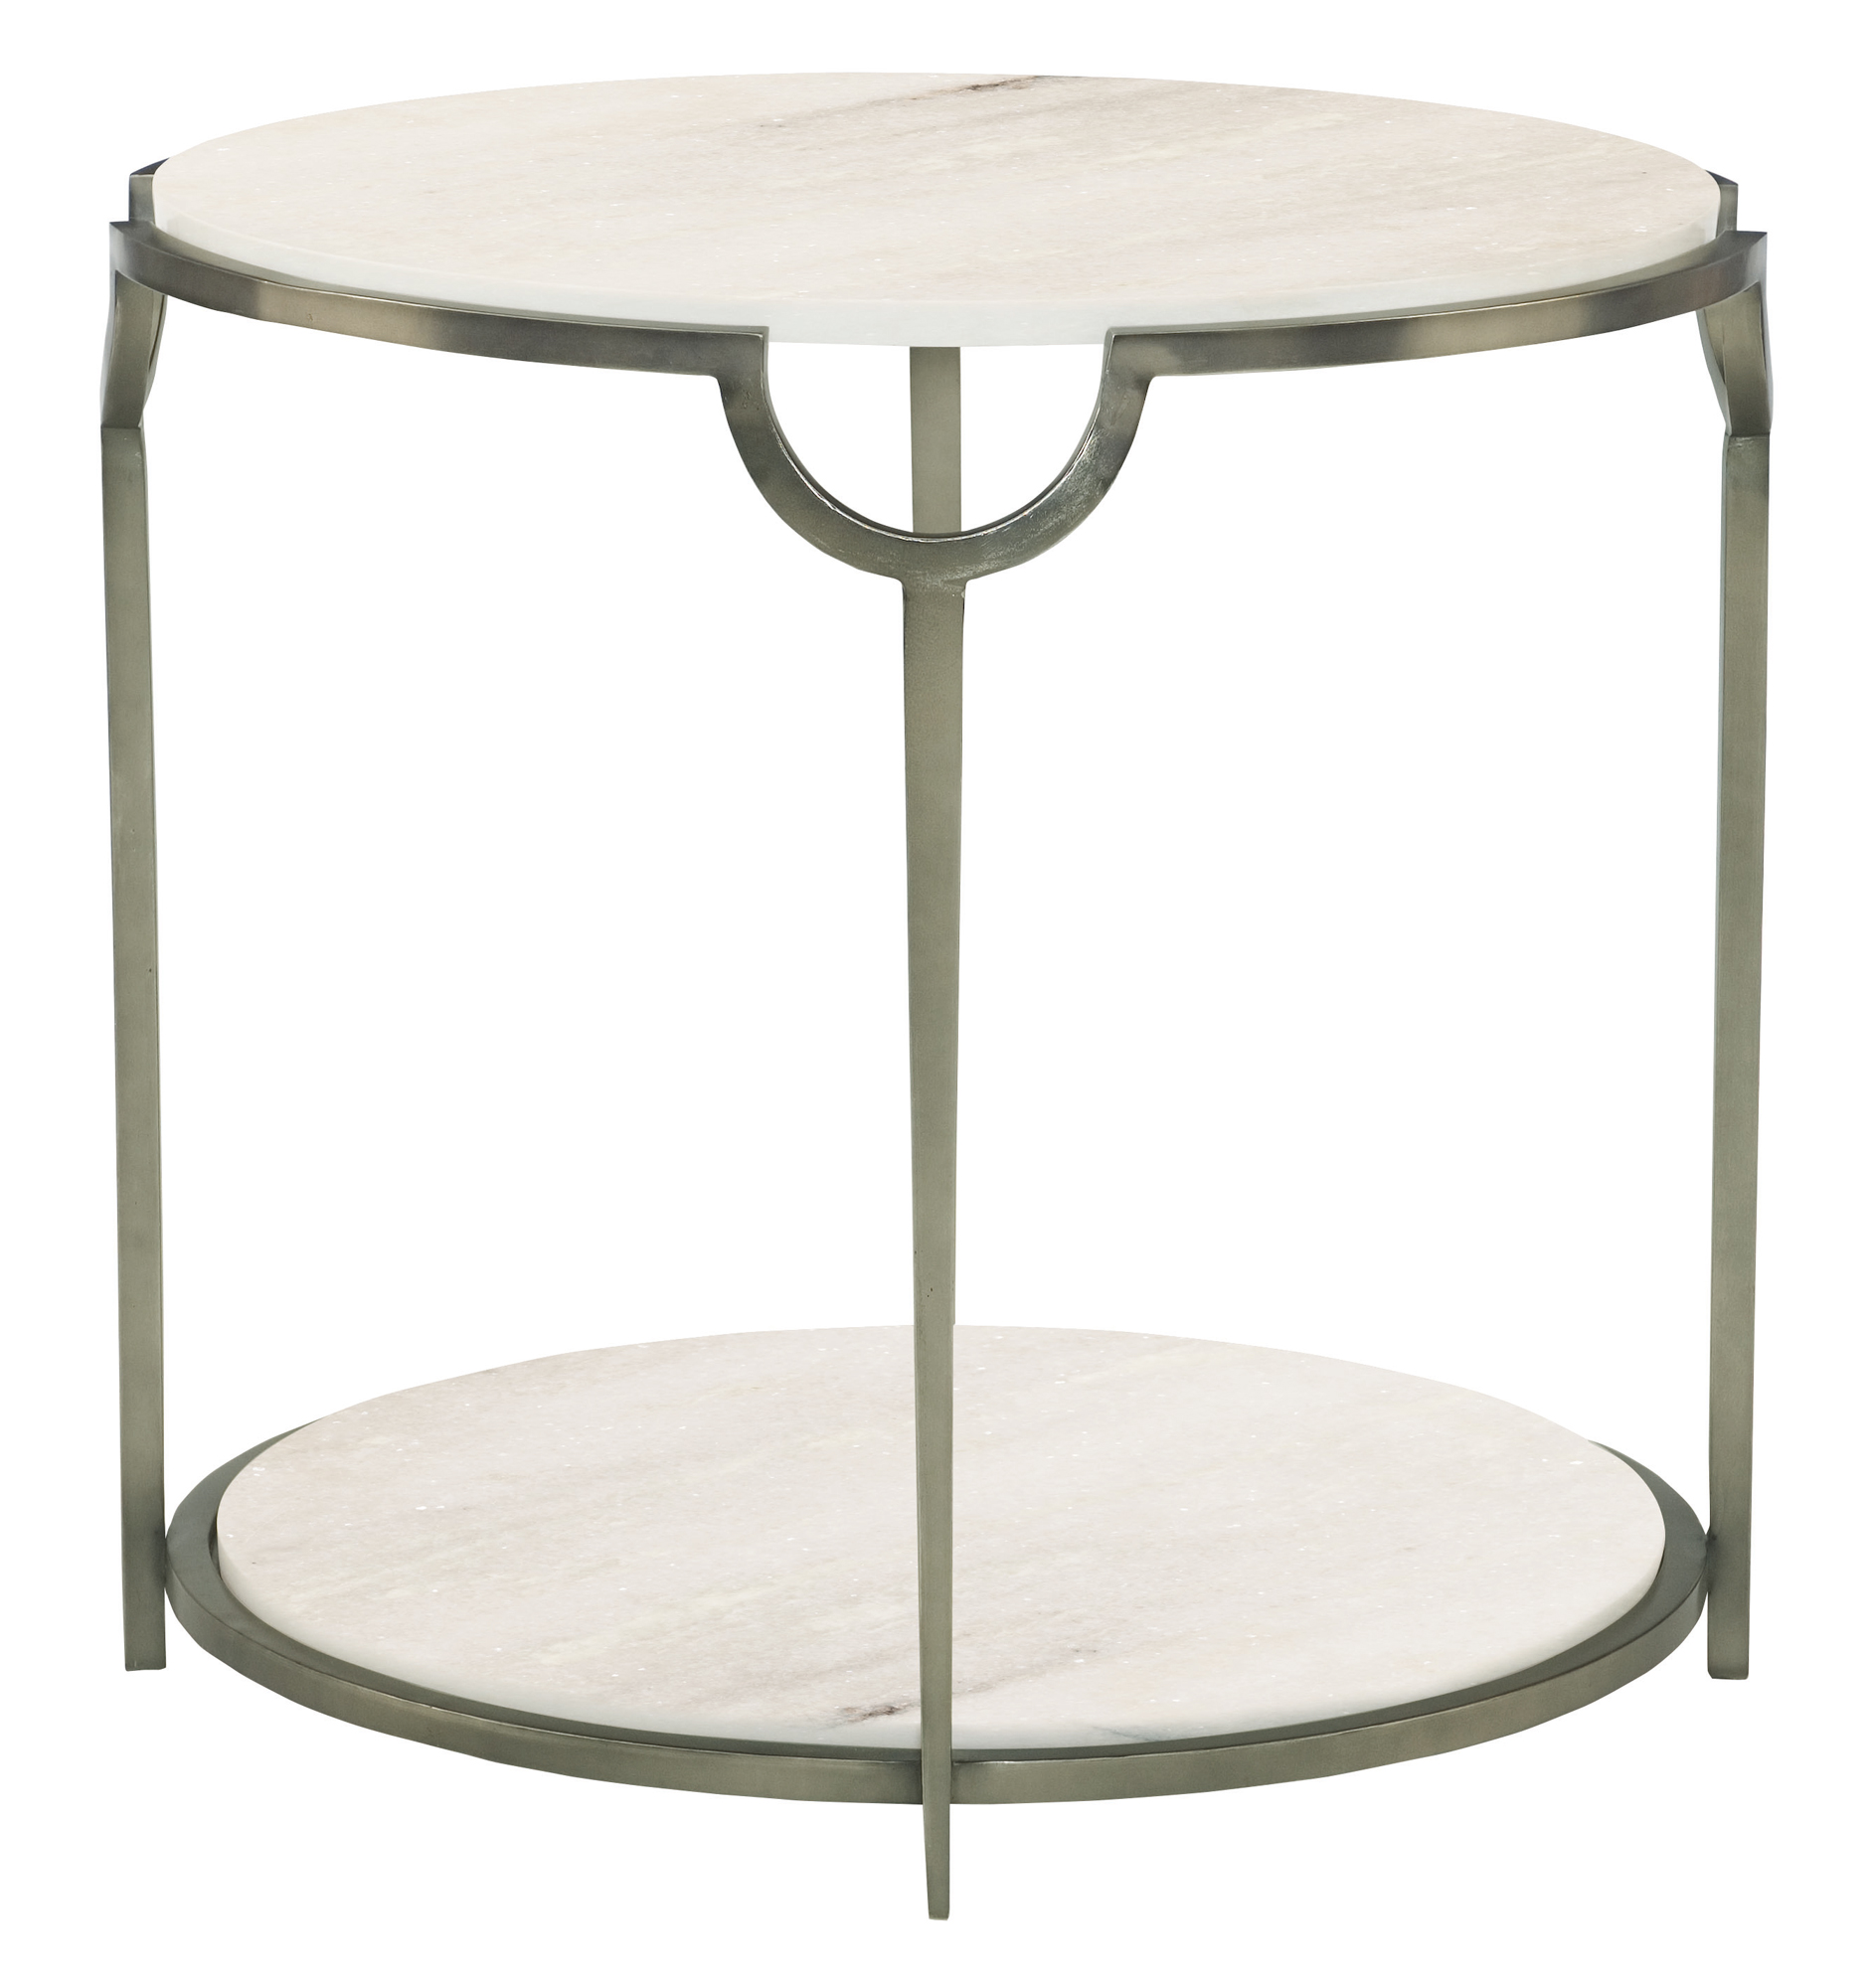 round metal end table bernhardt marble top accent target small cherry benchwright side square cover antique skinny room essentials storage knurl nesting tables west elm console